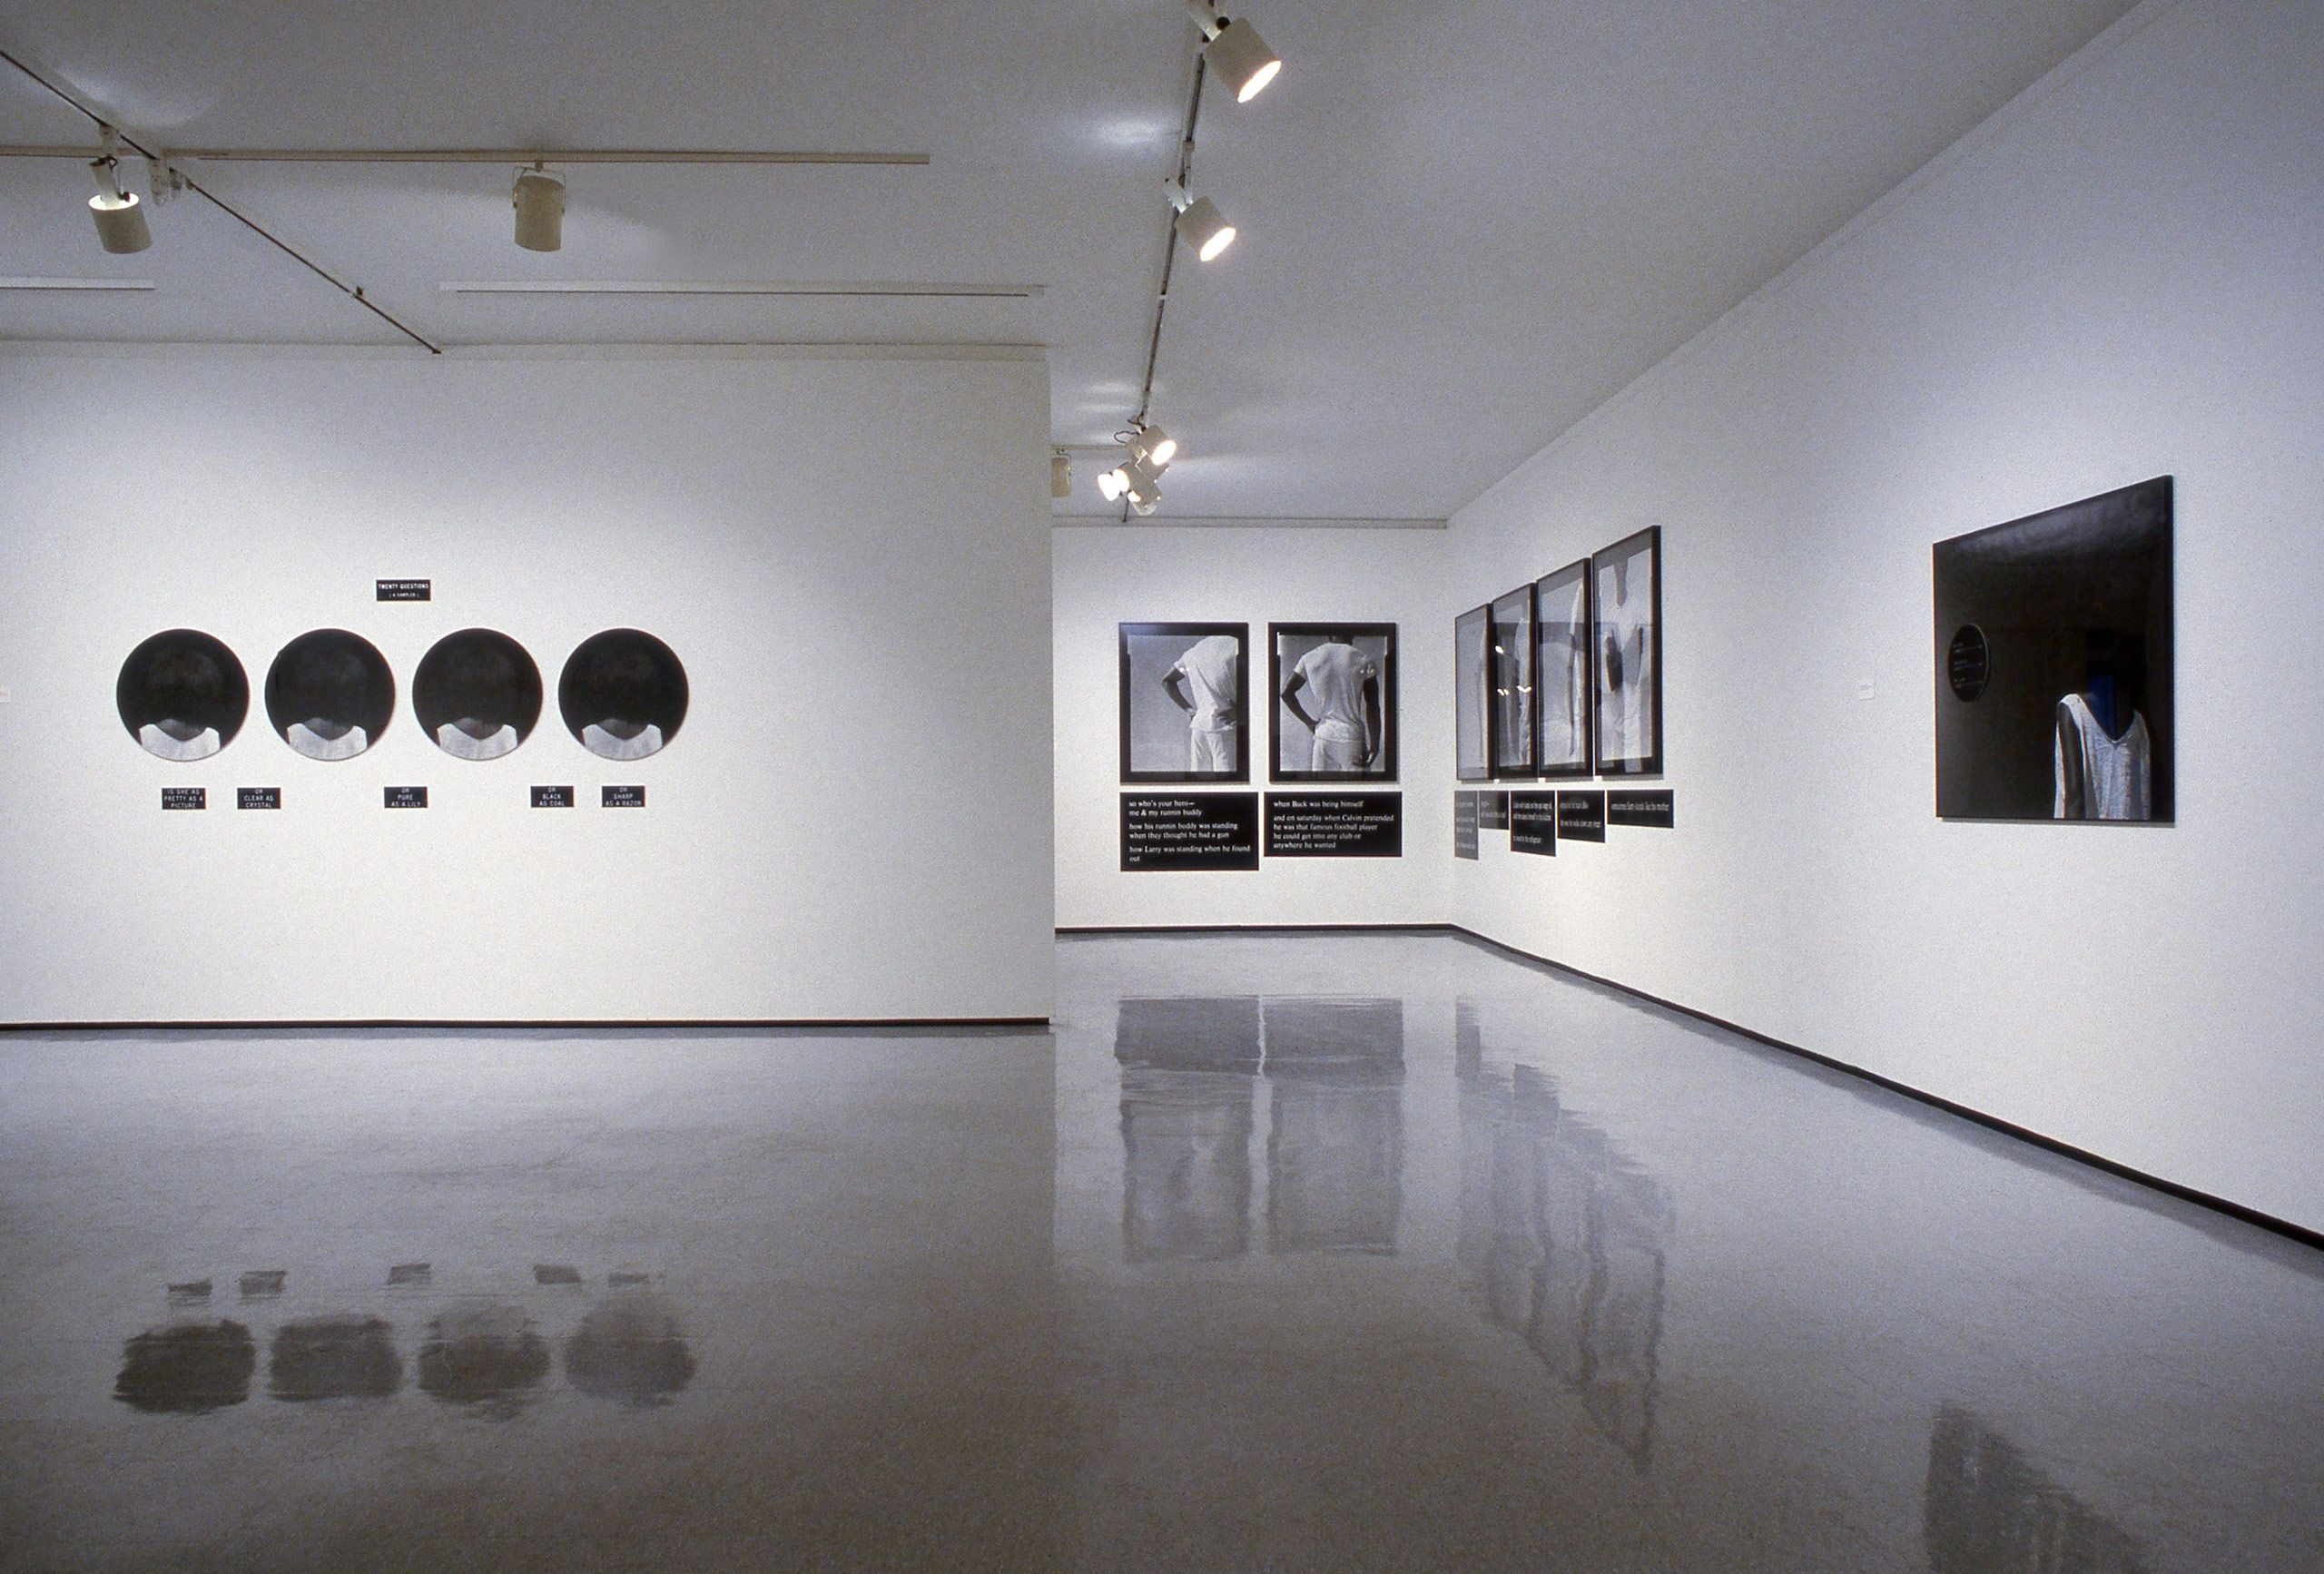 Lorna Simpson: For the Sake of the Viewer